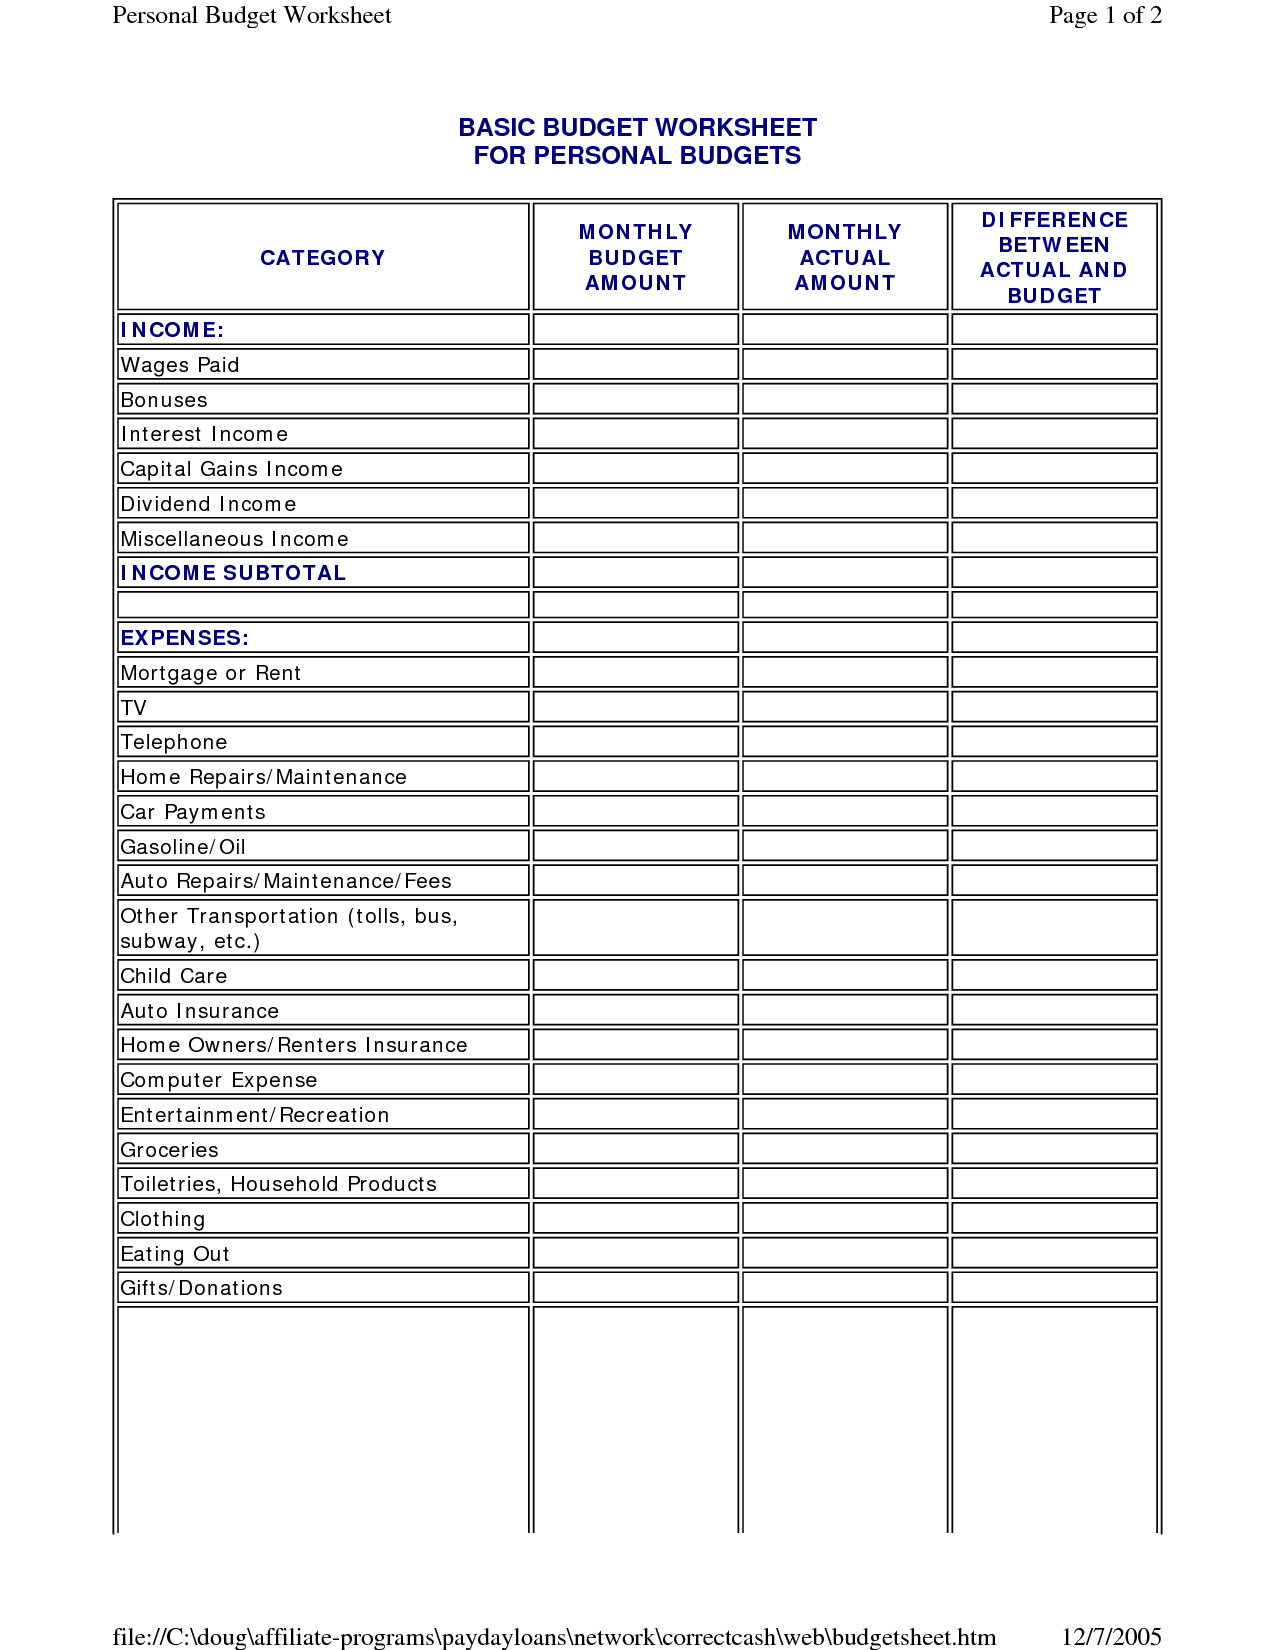 Personal Monthly Budget Spreadsheet For Monthly Bills Template Spreadsheet Personal Budget More Templates